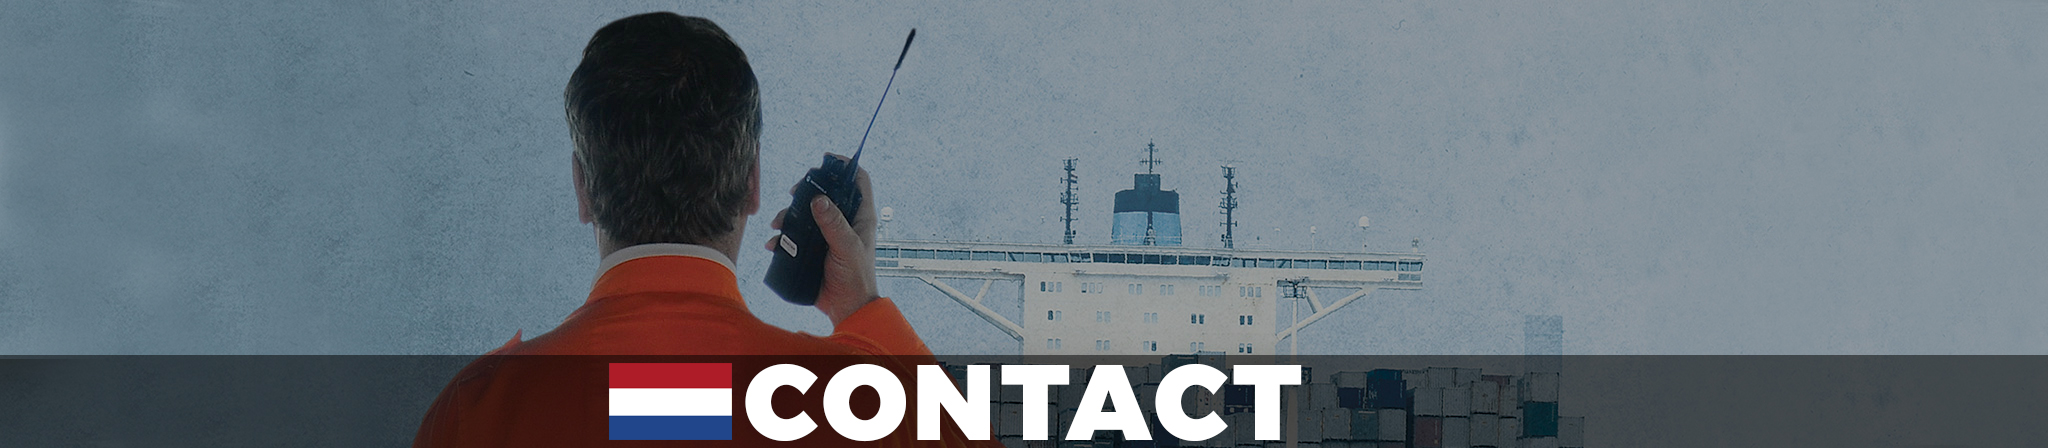 Contact (n)